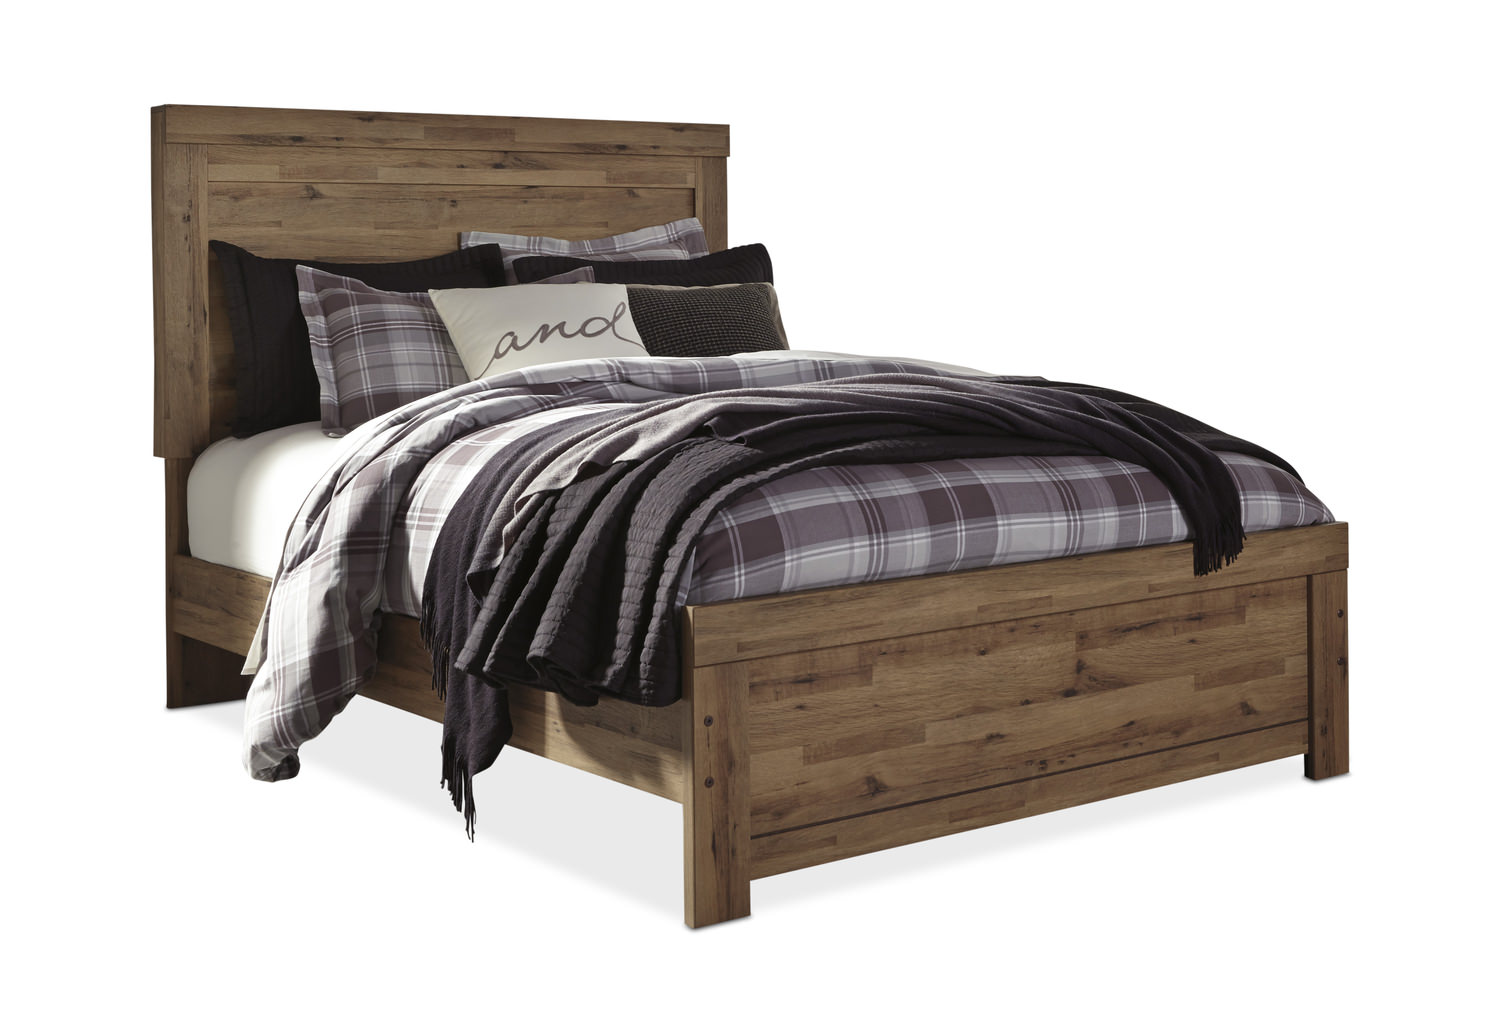 Outback Panel Bed Dock86